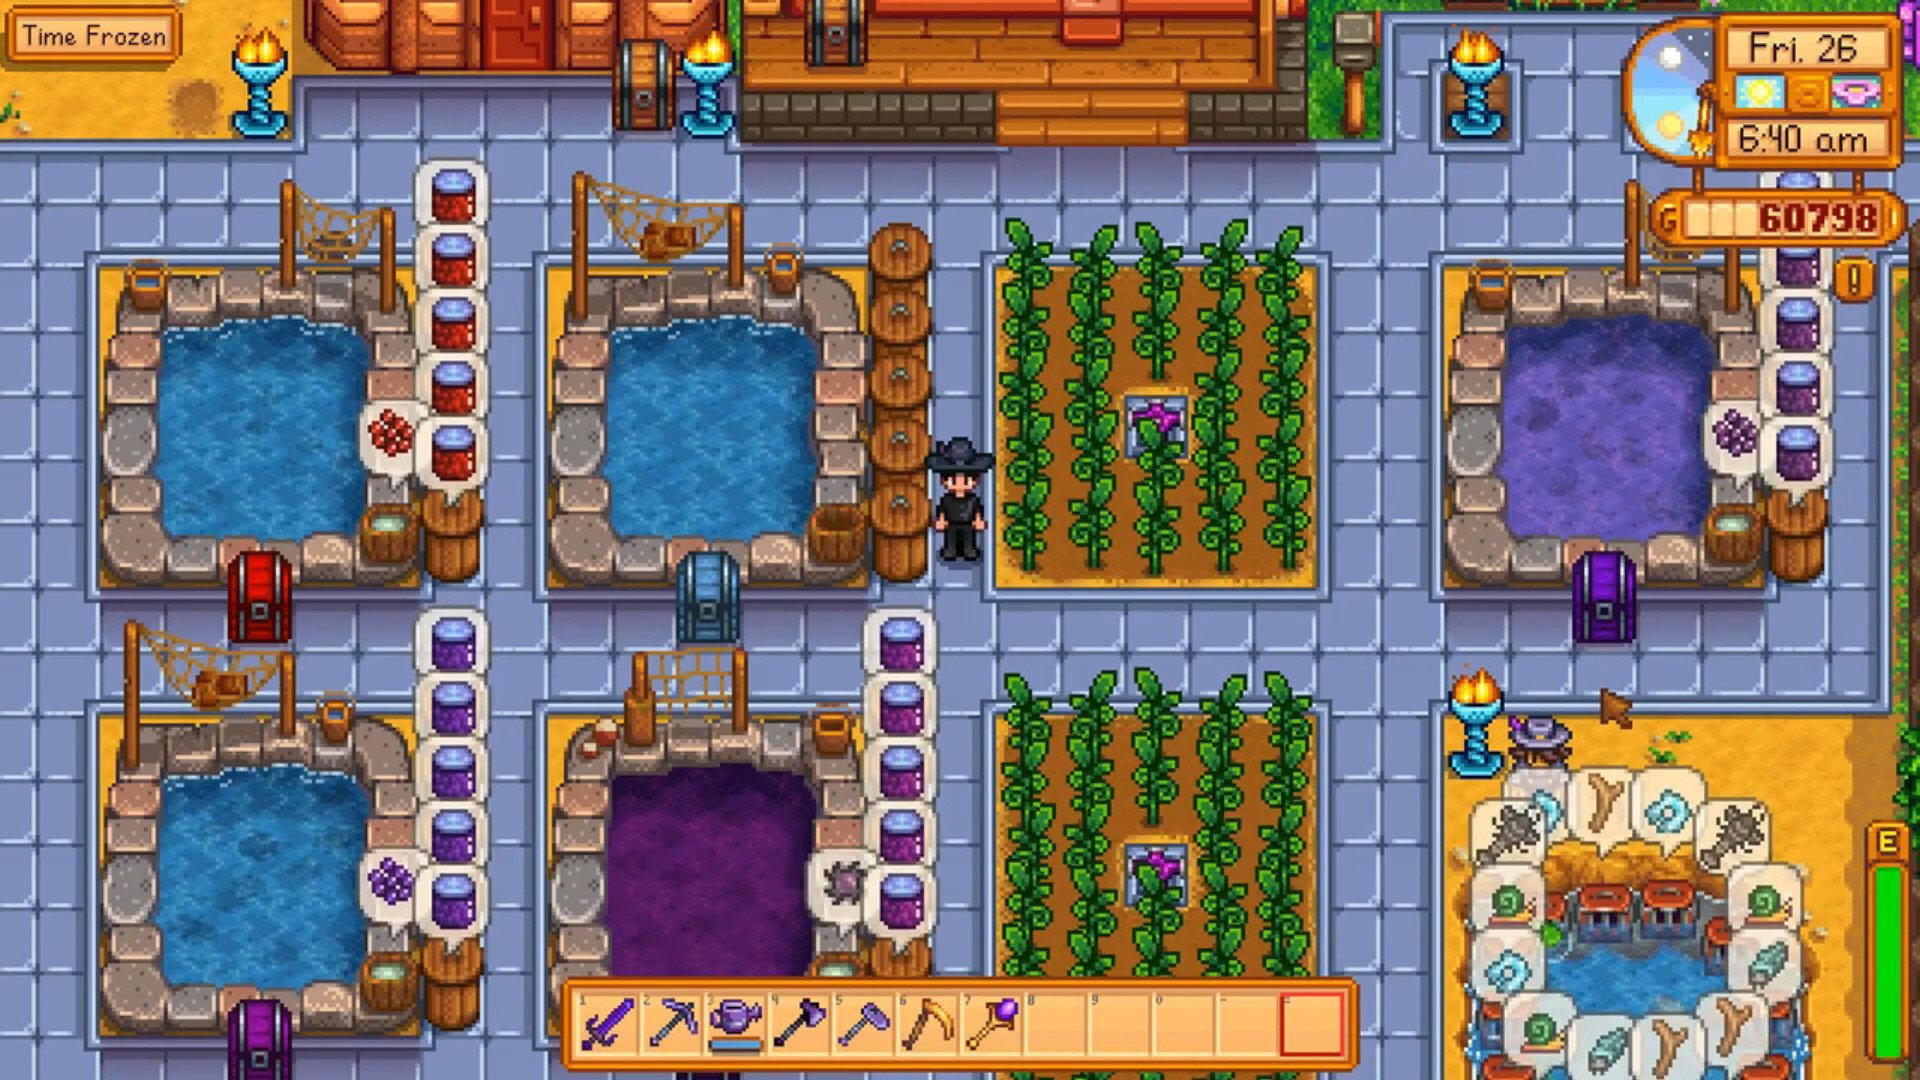 Stardew Valley: A Guide To Farming Your Fish Ponds And The Best Fish To Cultivate